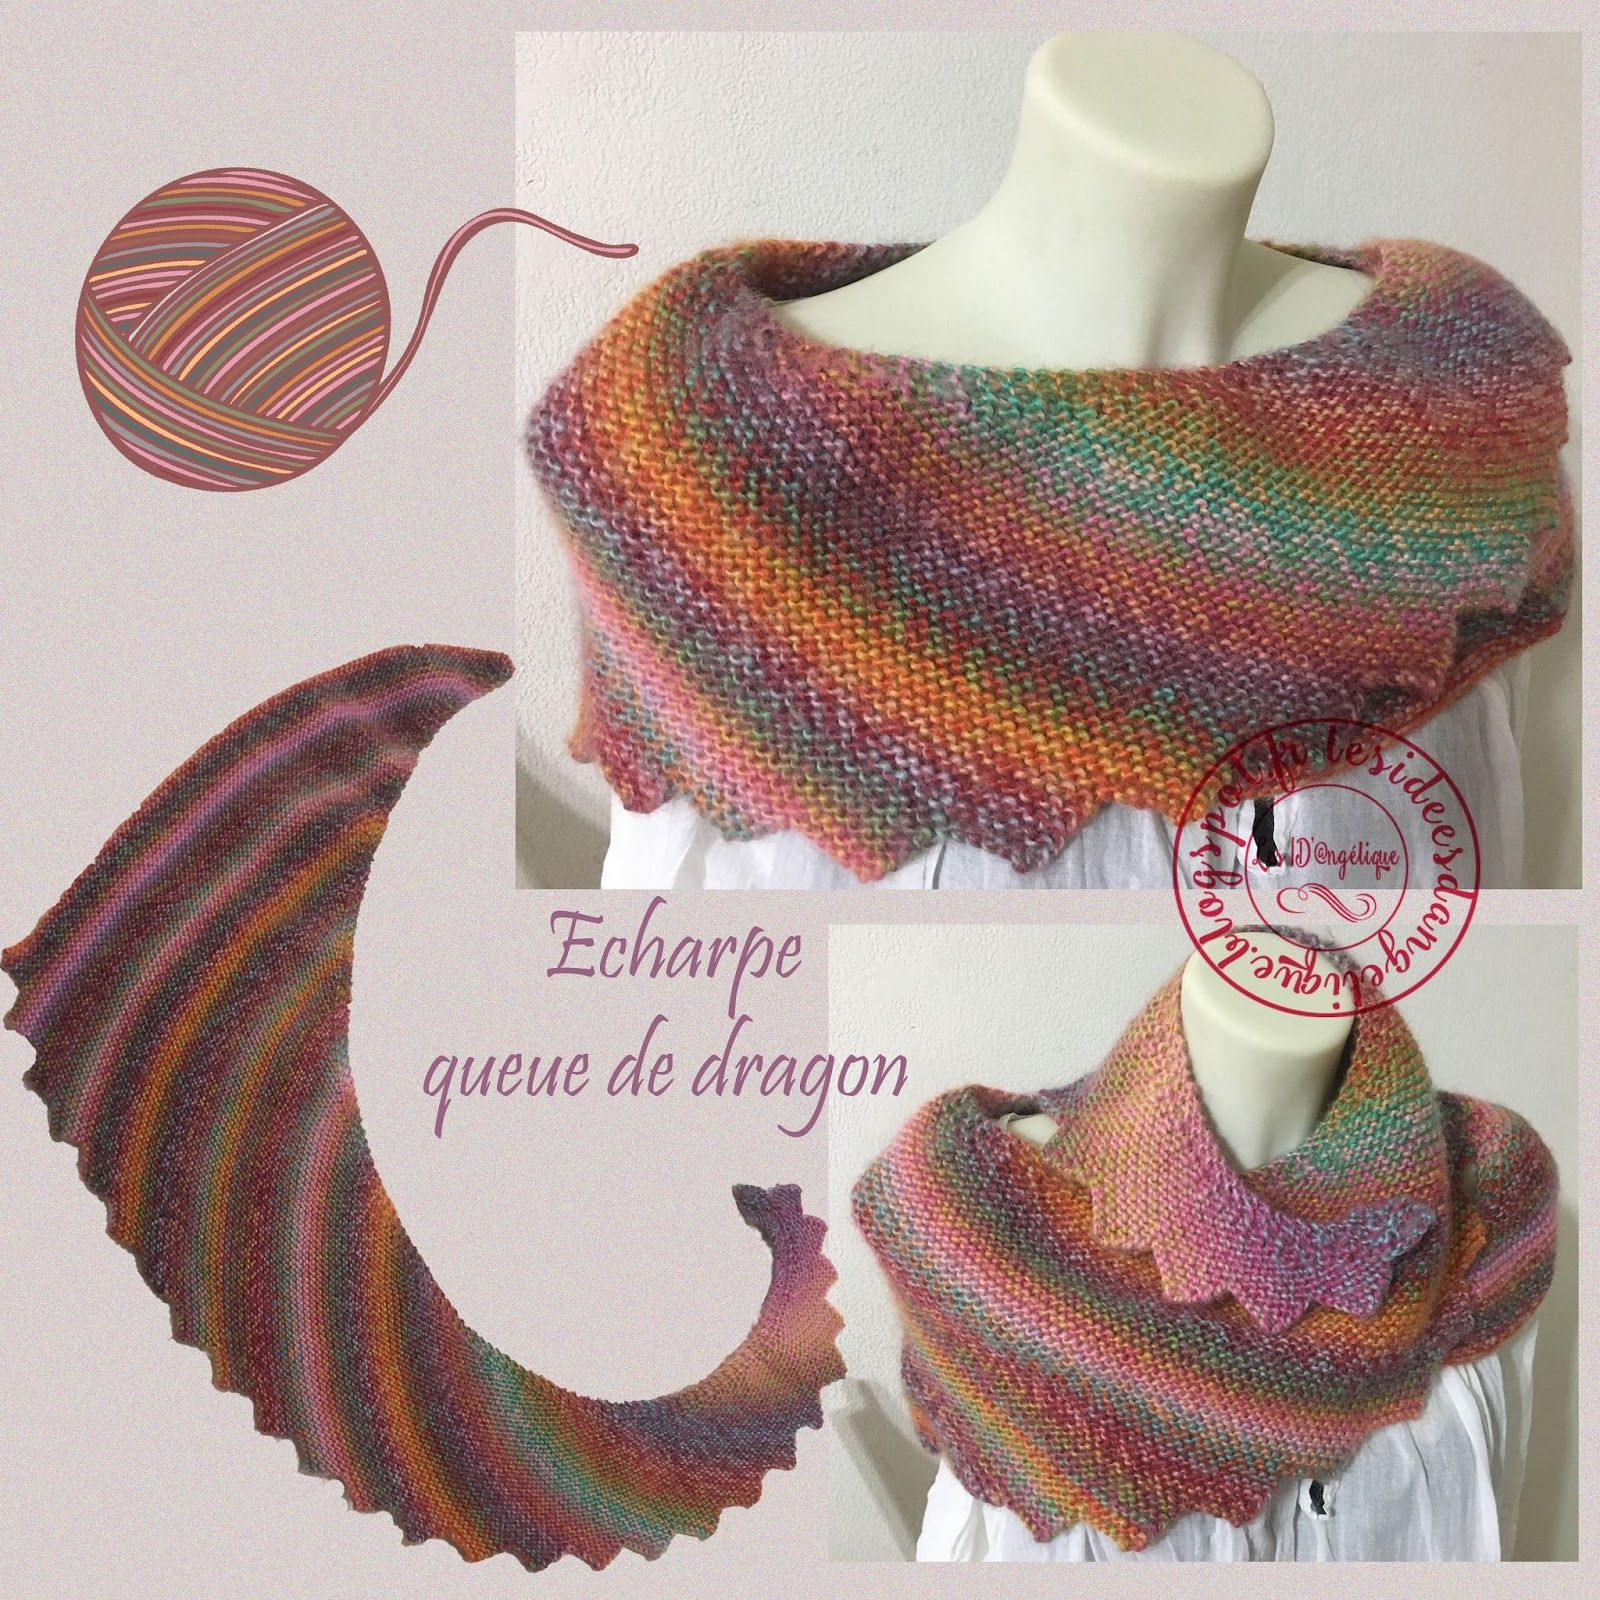 201 Charpe Queue De Dragon Arlequin Tricot Et Crochet